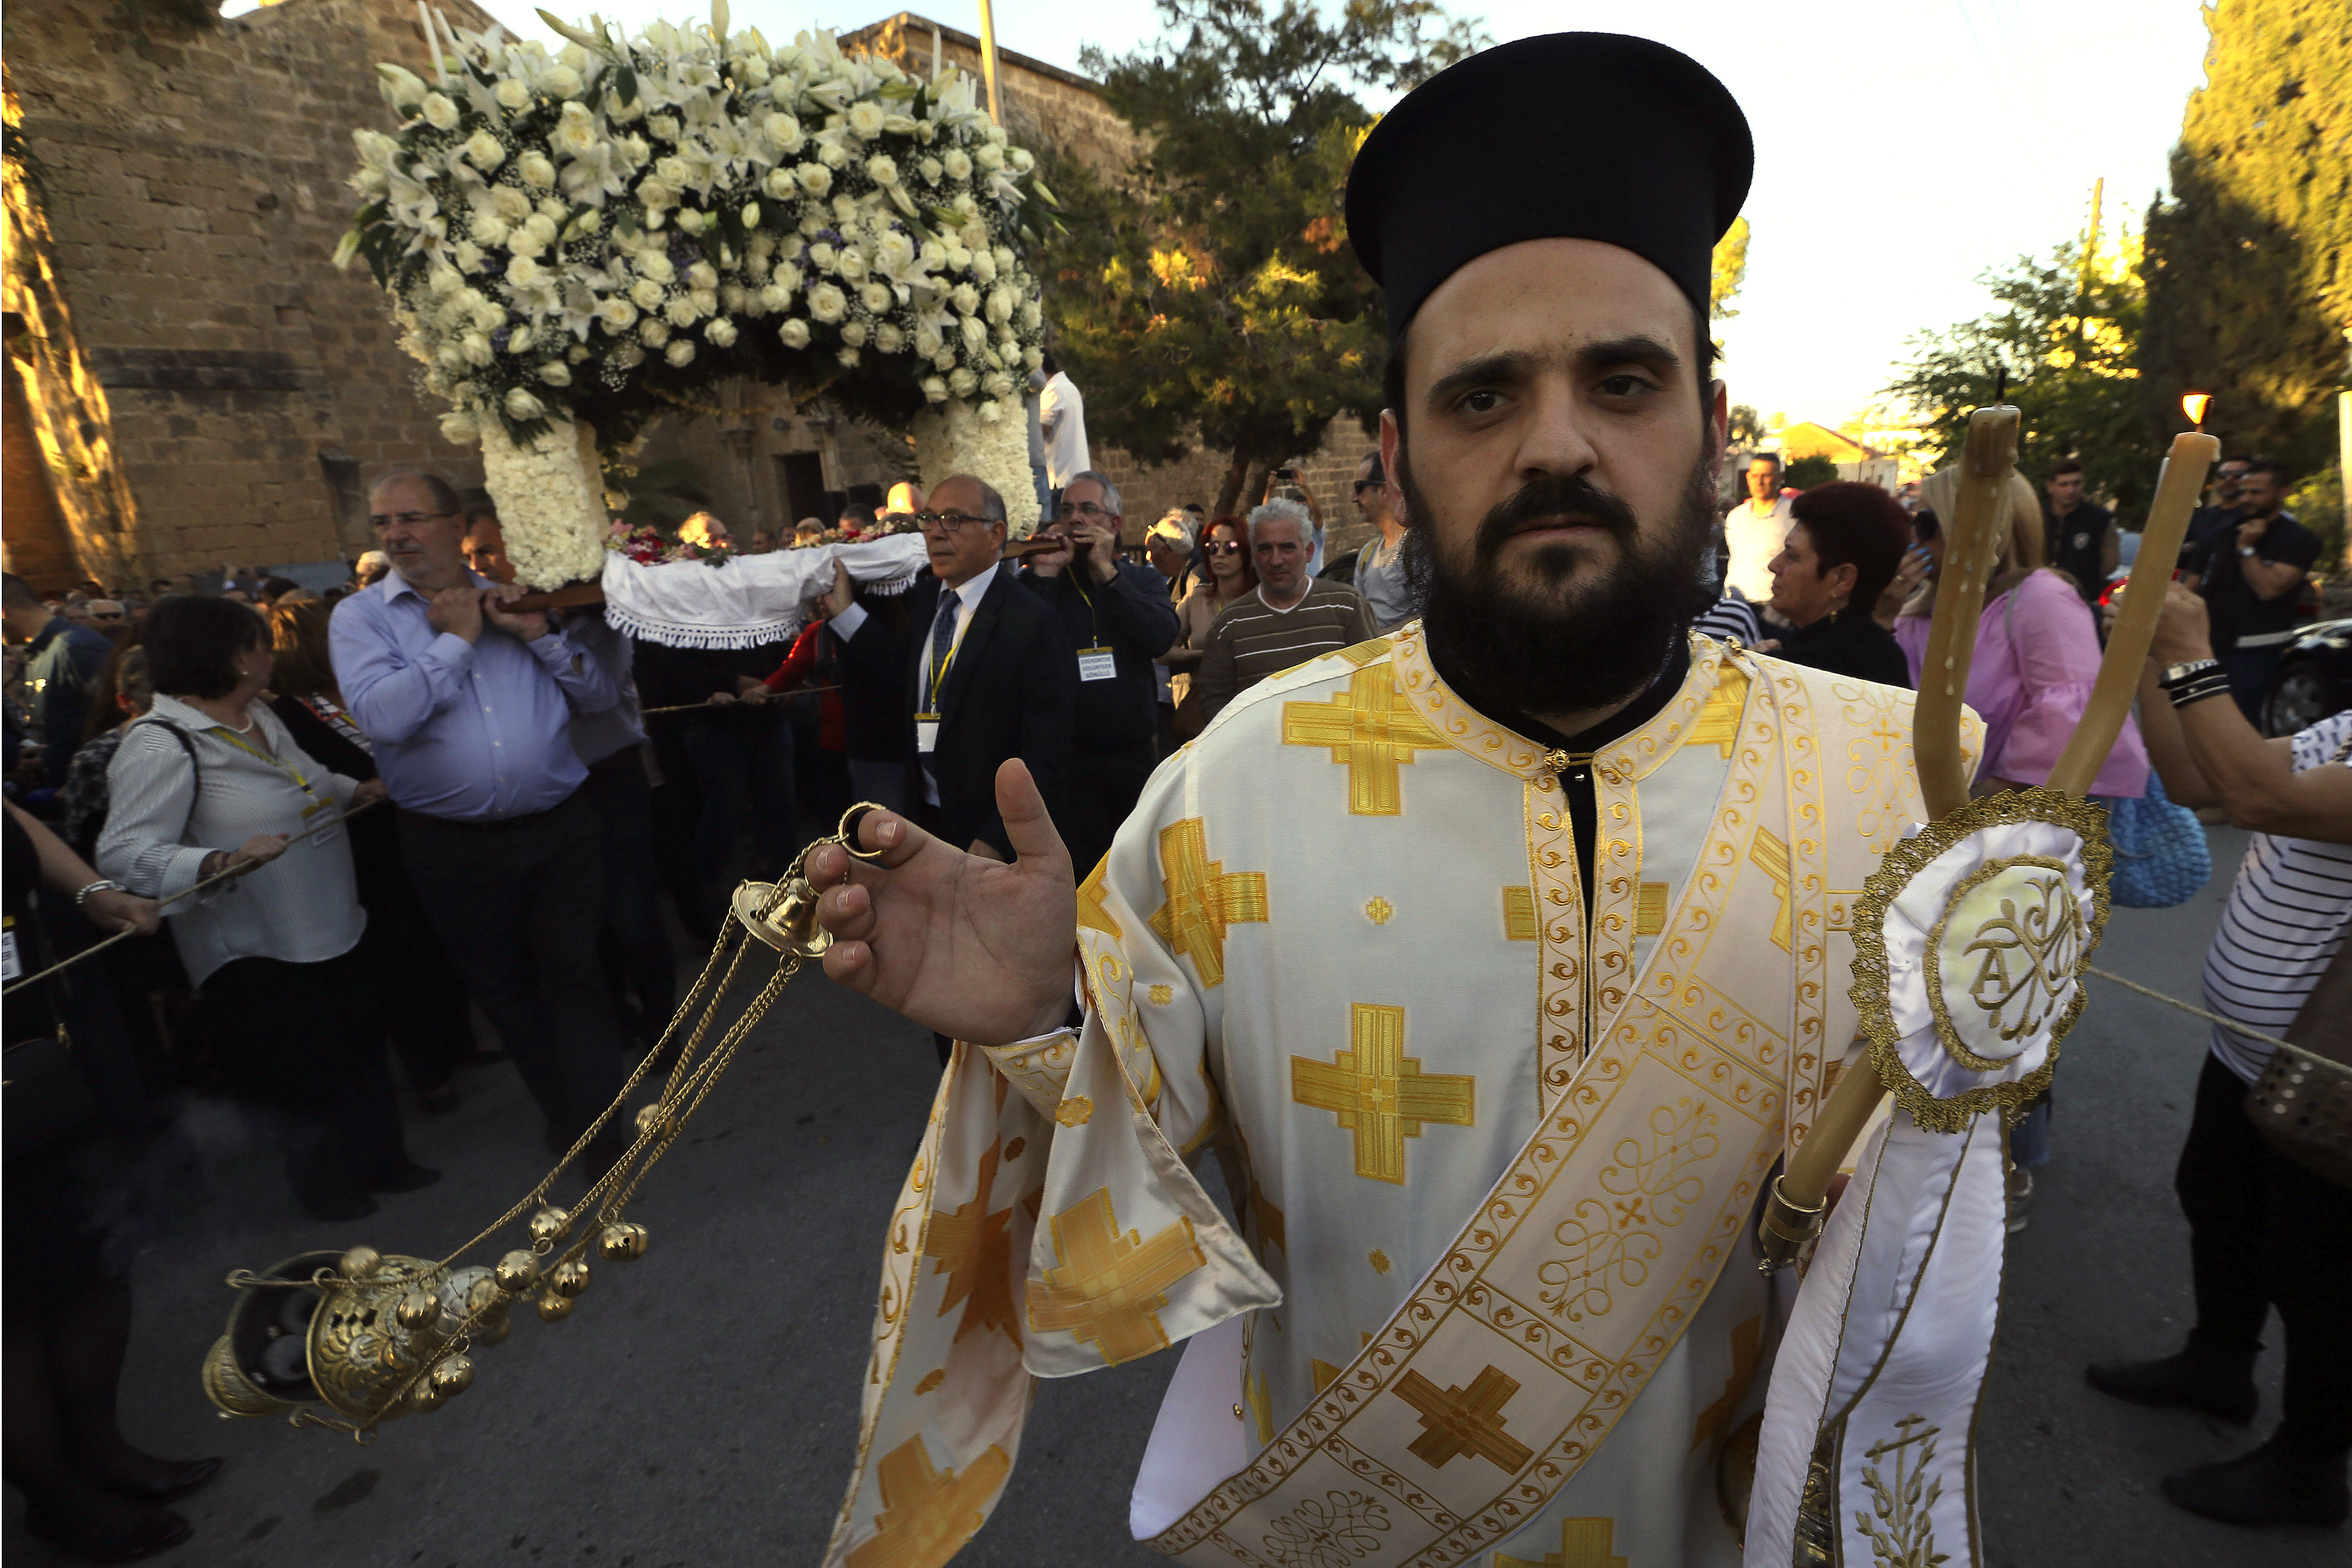 A Greek Orthodox Christian Priest holds candles during the Good Friday procession of the Epitaphios, at the church of Saint George Exorinos within the ancient walls of Famagusta city, Cyprus, on Friday, April 6, 2018. According to Orthodox tradition, the faithful follow the Epitaphios which rests under a flower-adorned canopy in procession around the church to commemorate Christ's funeral procession. This is one of the few times in recent years where Turkish Cypriot authorities have permitted liturgical services at the 14th Century church since the island was divided in 1974 when Turkey invaded following a coup by supporters of union with Greece. (AP Photo/Petros Karadjias)